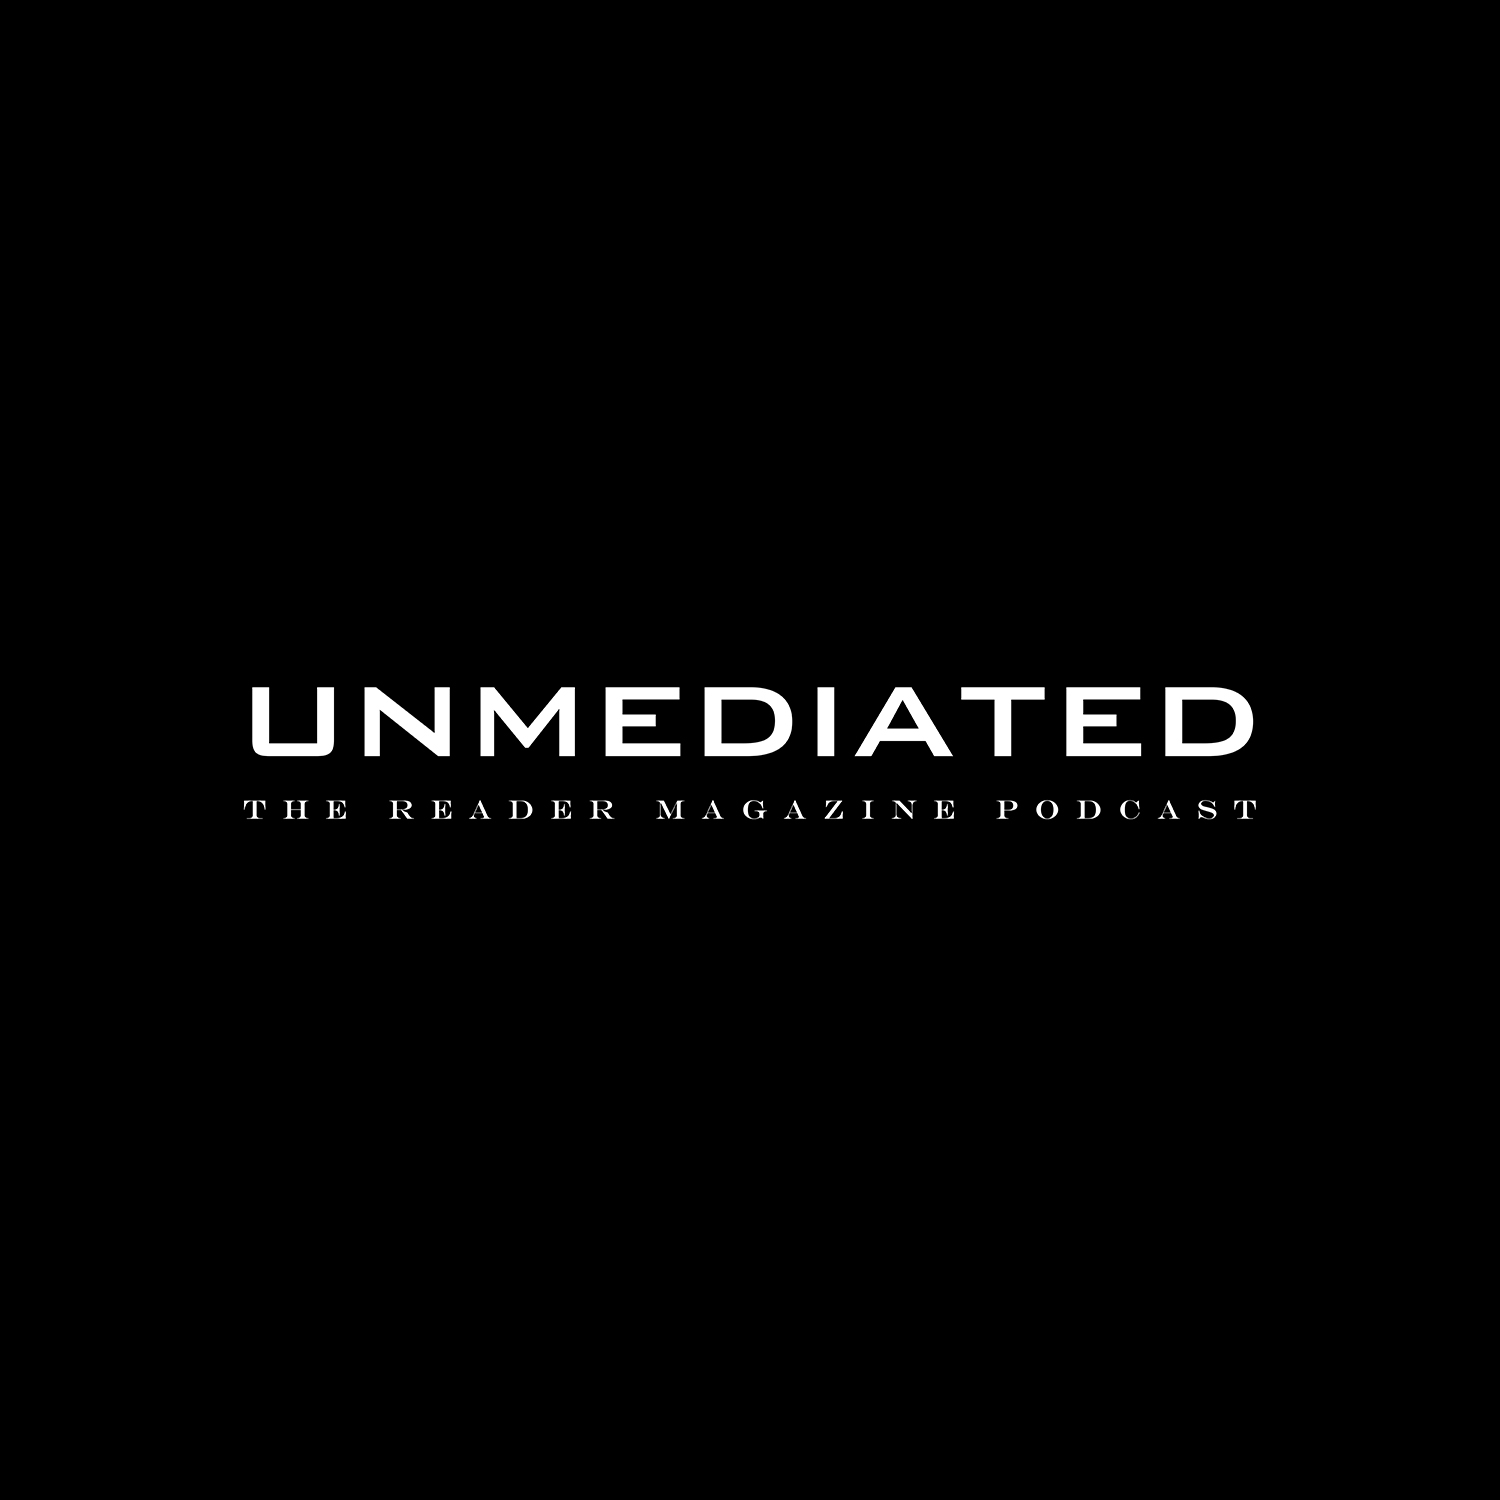 "UNMEDIATED - The Podcast of Reader MagazineEP. 10 | LIVE @ DTR ARTWALK PART 1Listen in on the conversation with photographer Daniel Gohman & mixed media artist Theresa Van Ornum on the topic of Using Art for Social Change: cutting through the noise, making a connection, raising awareness & supporting conservation efforts with The Artlands, and the power of shifting from what we're against to what we are ""for""."